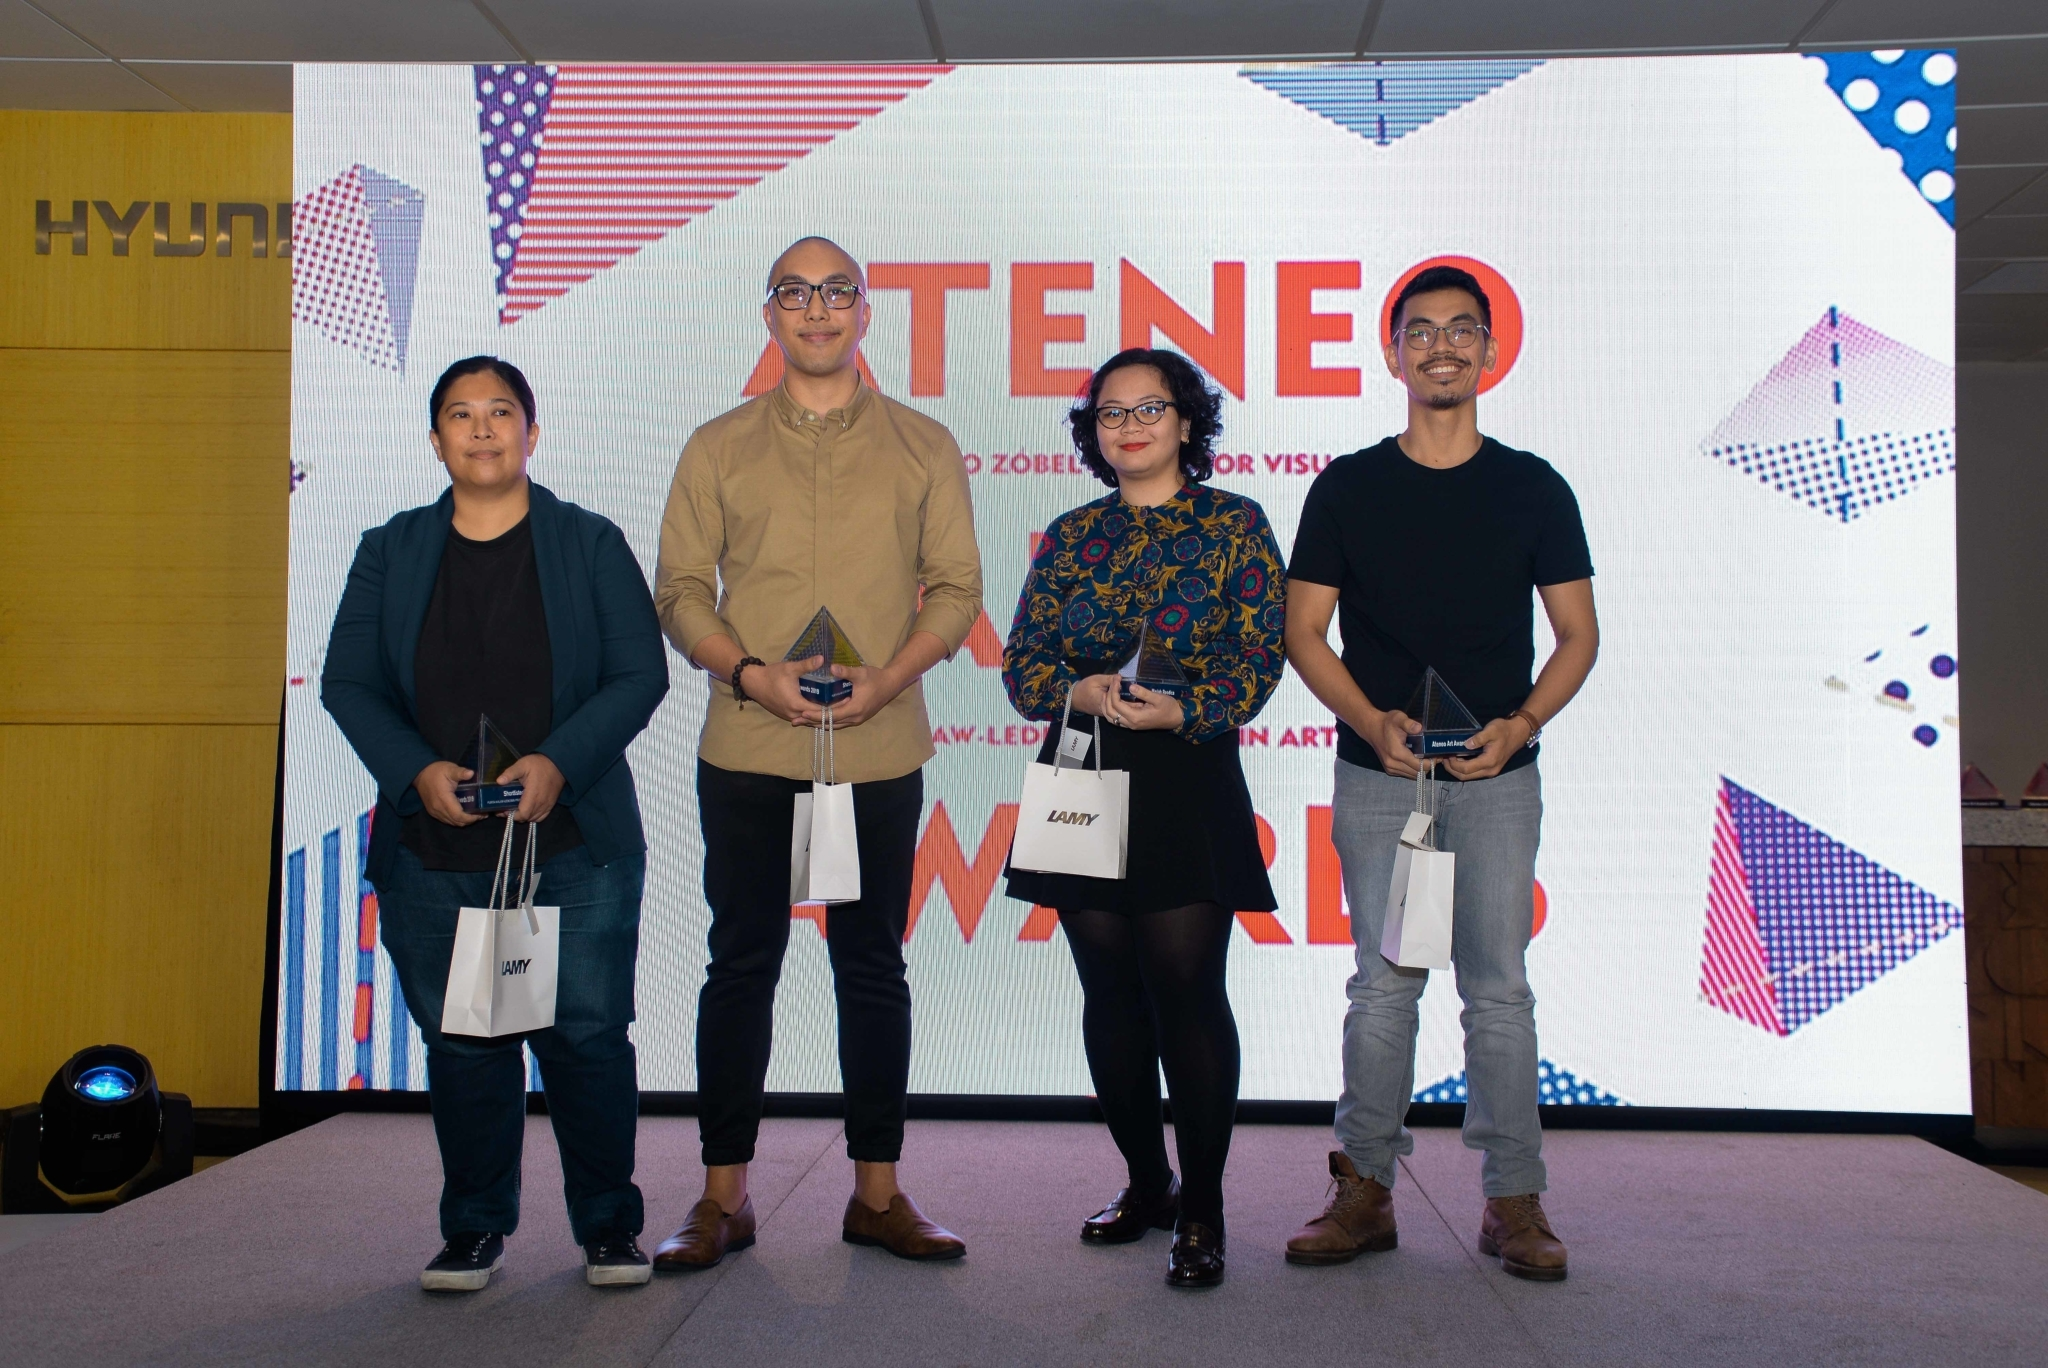 Ateneo Art Awards 2019 - Purita Kalaw-Ledesma Prizes in Art Criticism Shortlisted Writers